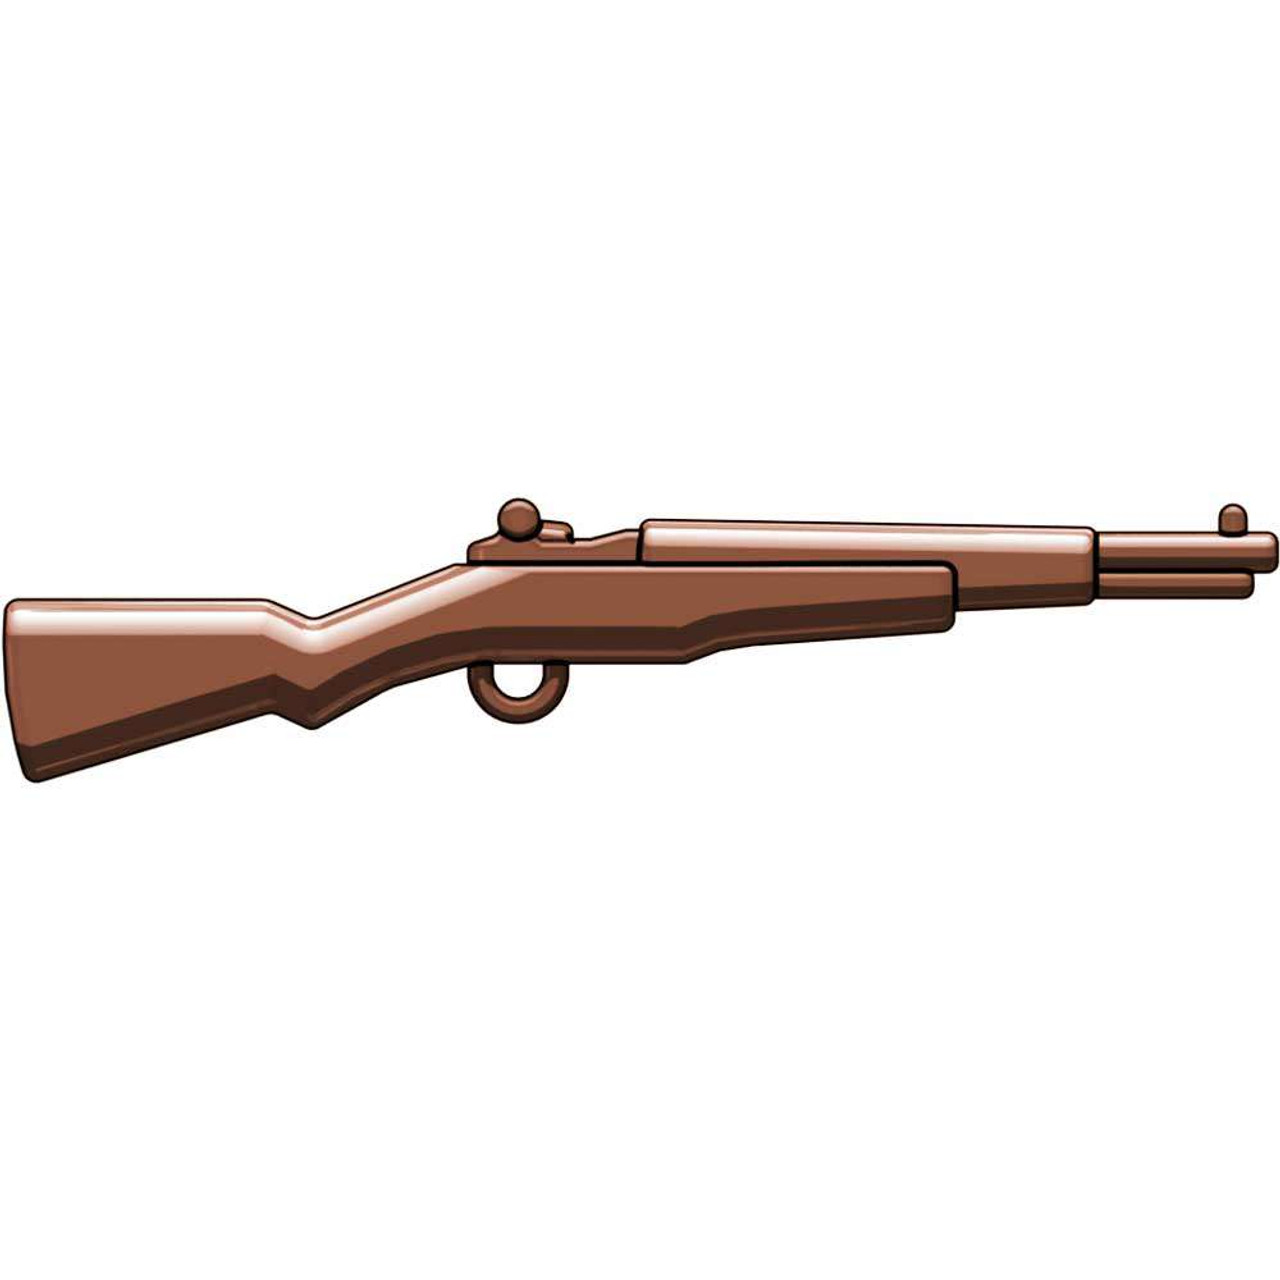 BrickArms Weapons M1 Garand 2.5-Inch [Brown]